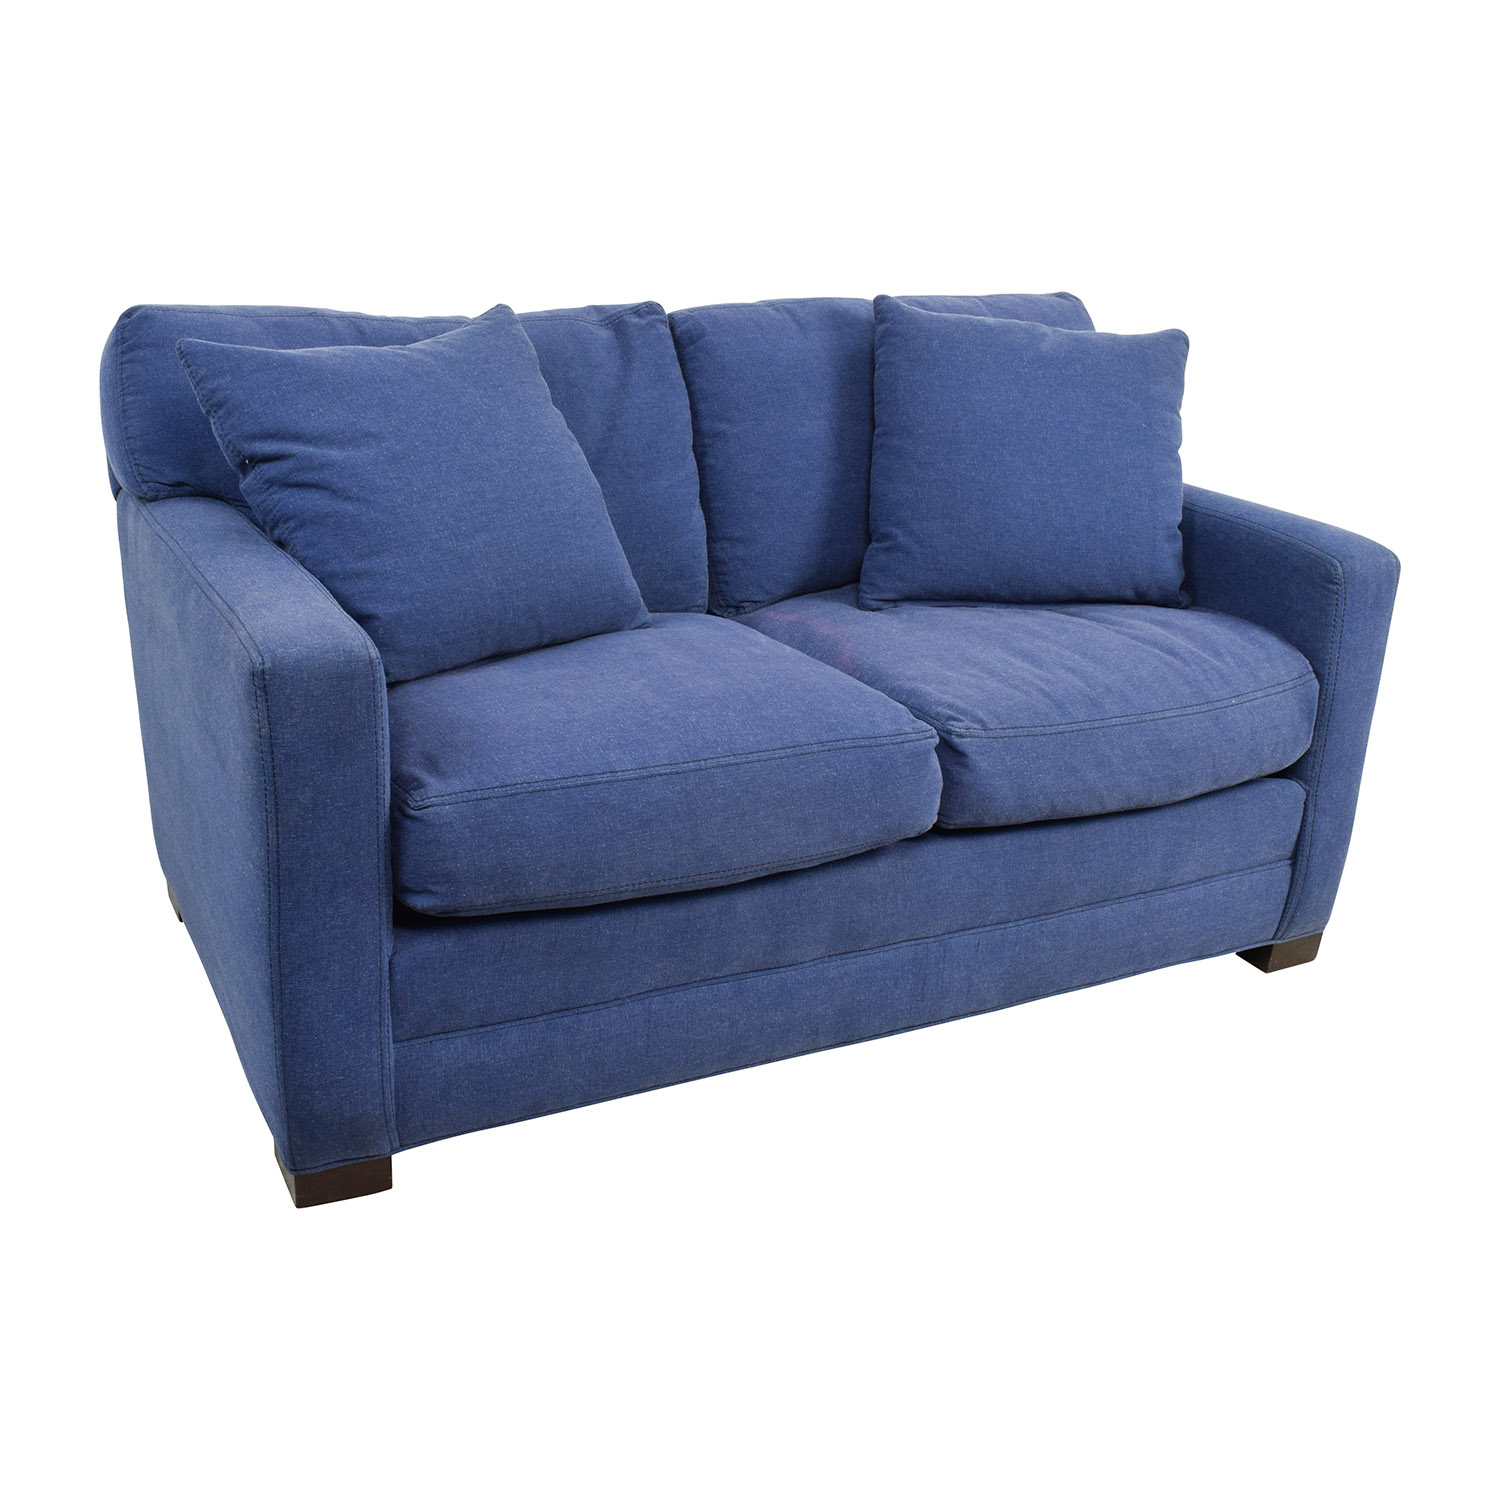 ... Shop Lee Industries Lee Industries Denim Blue Loveseat Online ...